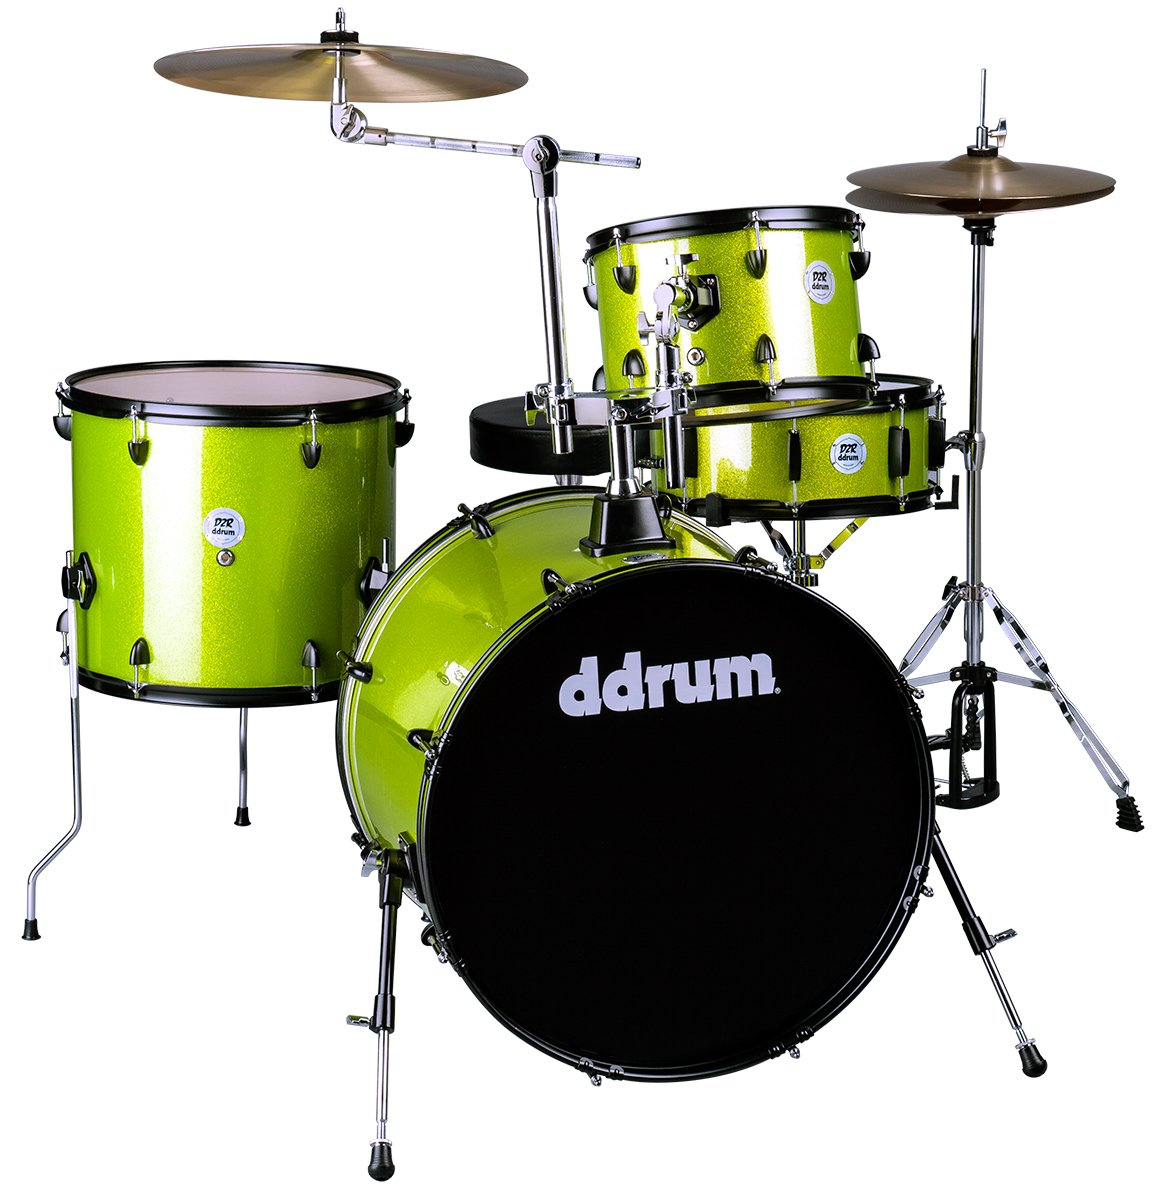 DDRUM D2 Rock Kit Lime Sparkle w/ Cymbals & Hardware